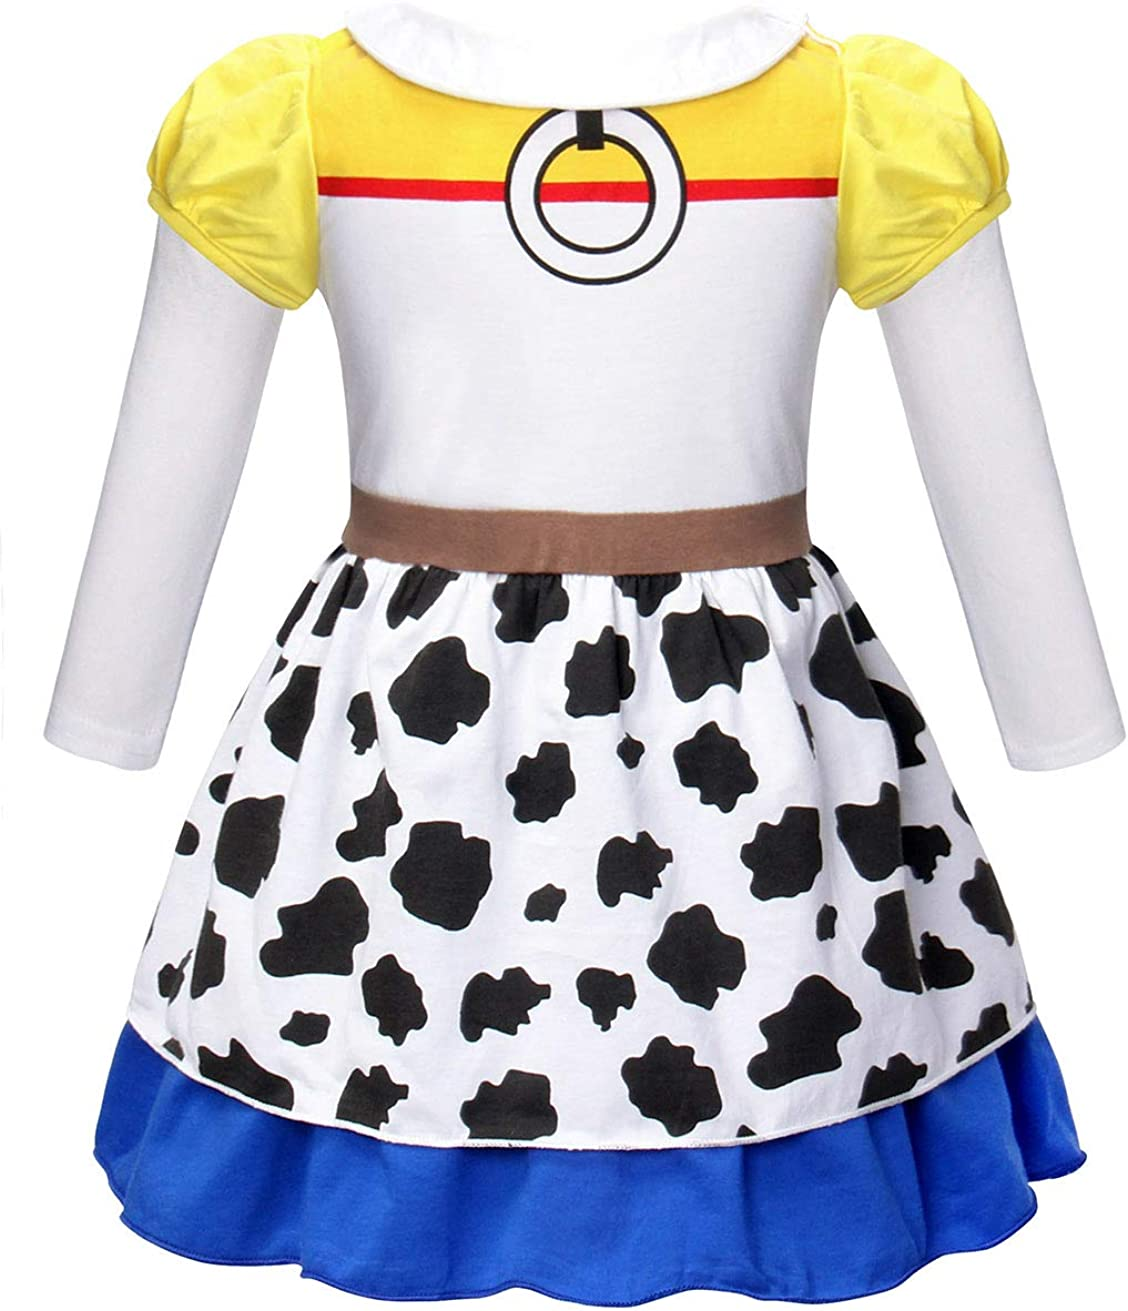 AmzBarley Girls Jessie Costume Dress up Kids Toddler Fancy Party Dresses Children Birthday Holiday Halloween Cosplay Outfit Clothes